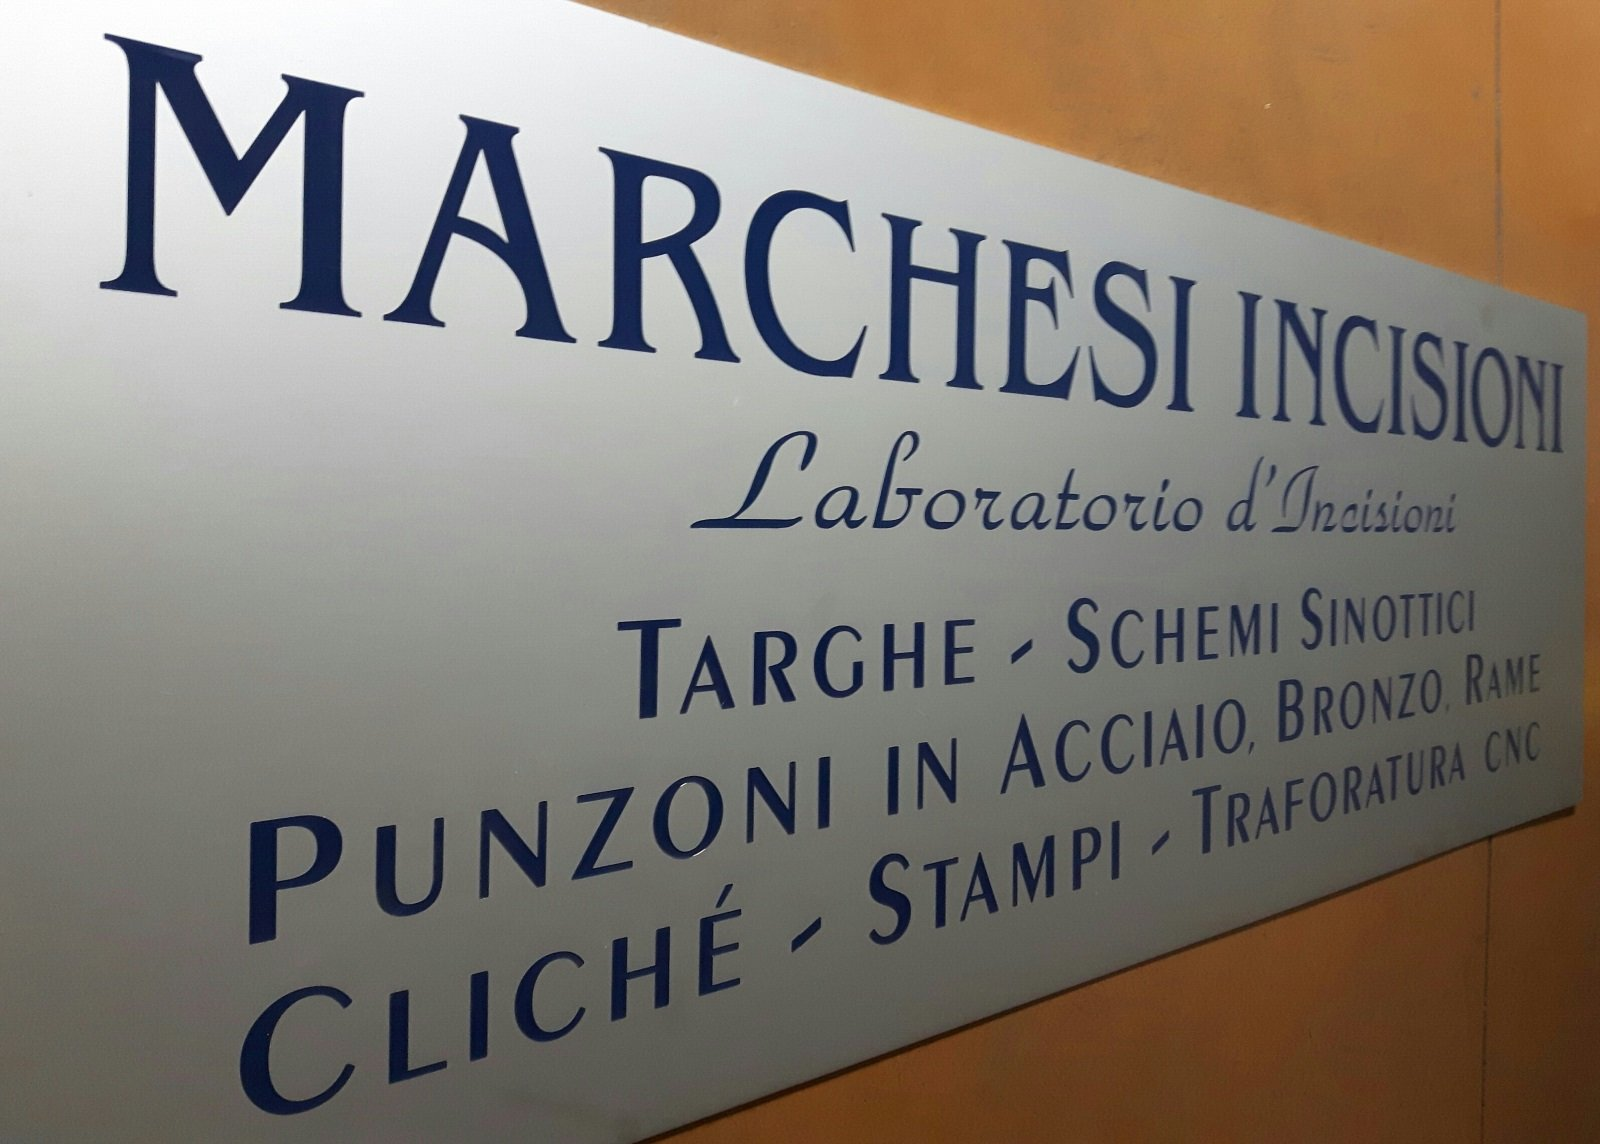 targa di un laboratorio di incisioni